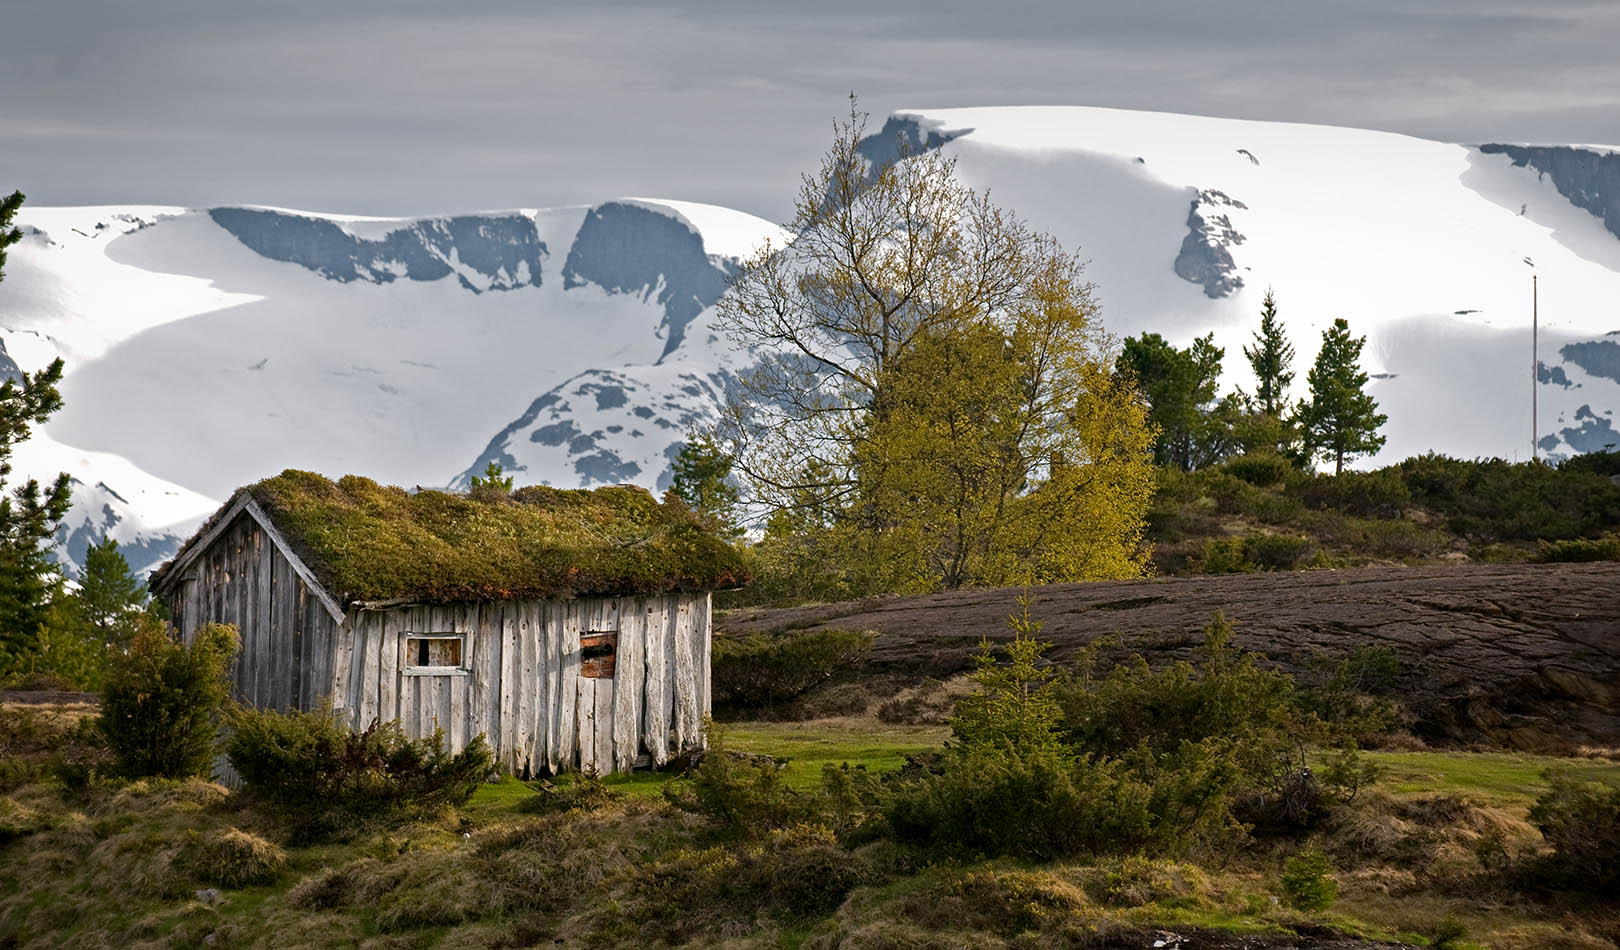 Old cabin on Utvikfjellet, Stryn, with white mountains in the background.